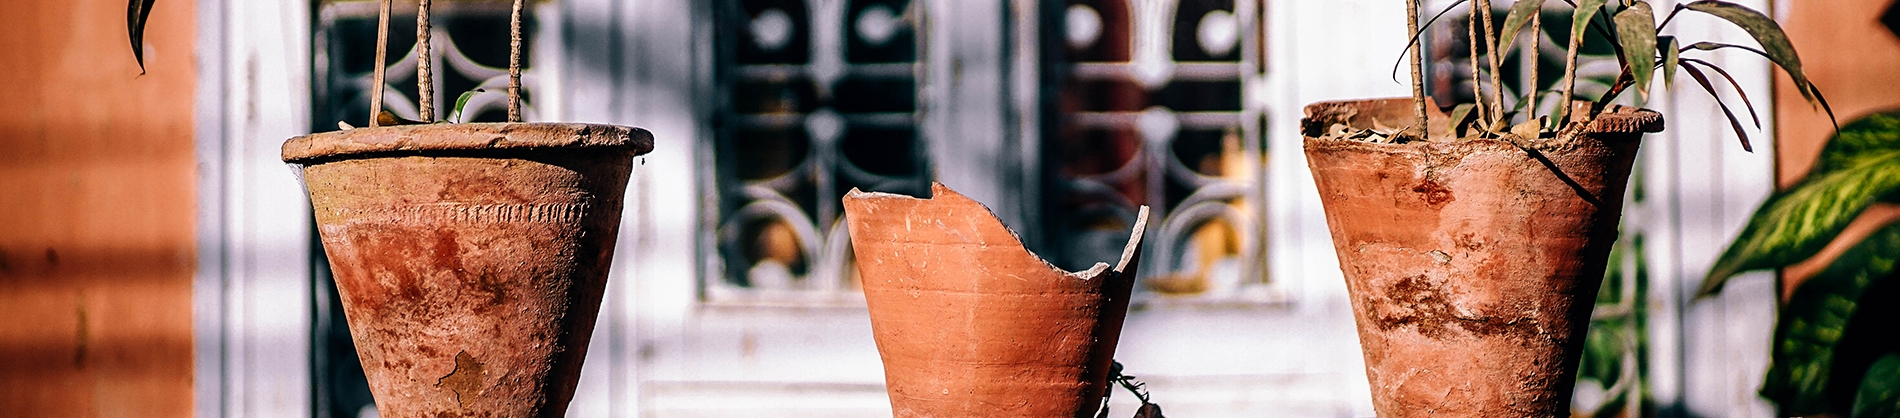 Two clay plant pots with one smashed plant pot